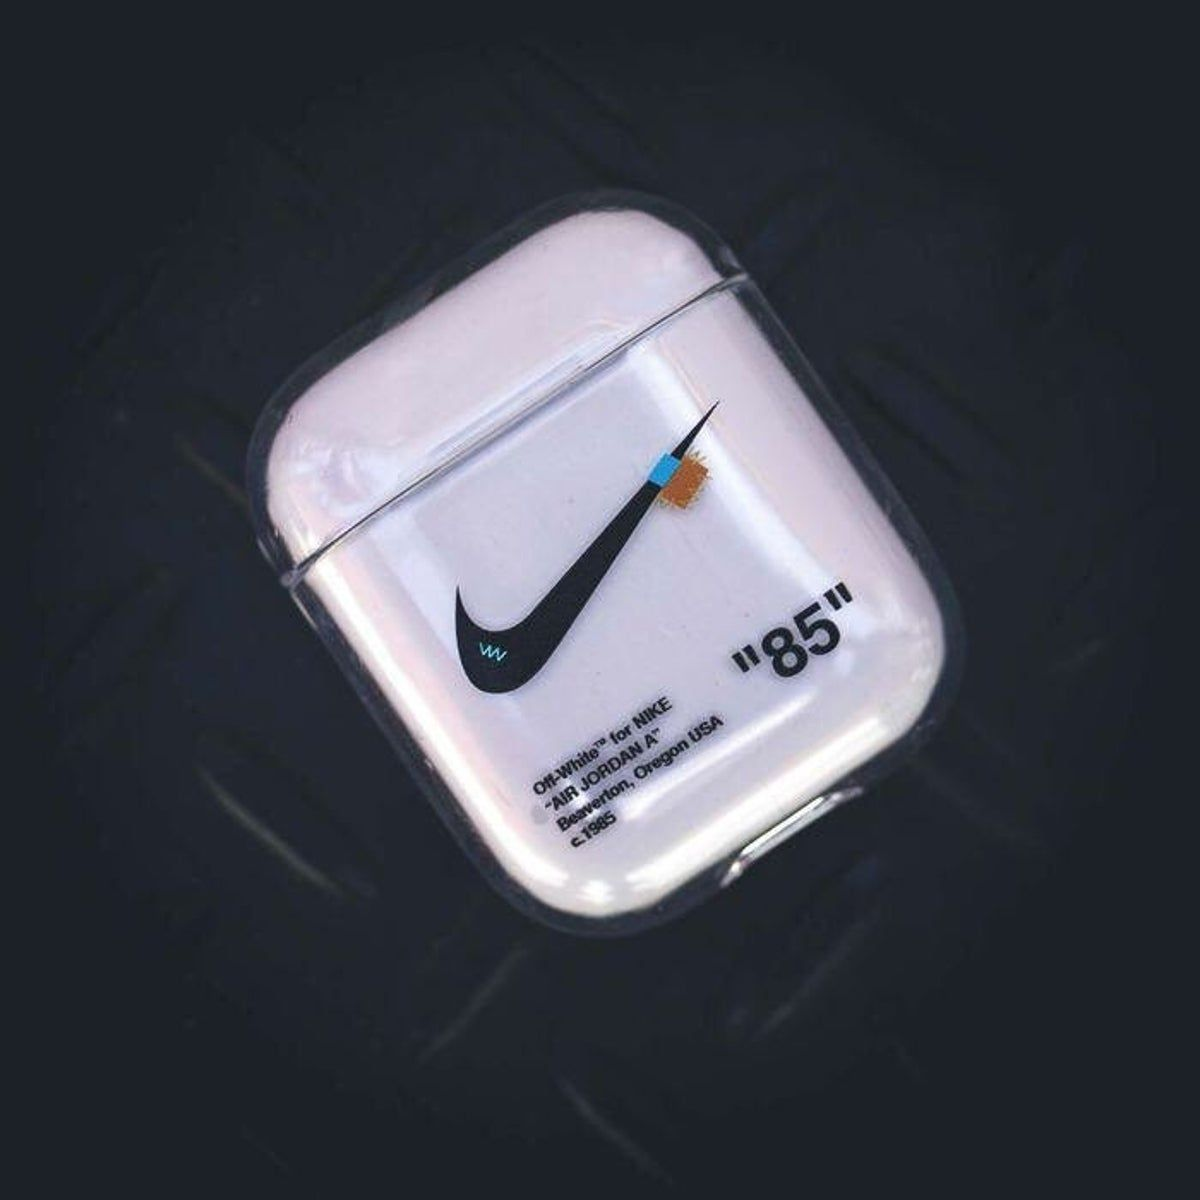 Apple Airpods Nike Case Airpod Case Iphone Cases Nike Iphone Cases